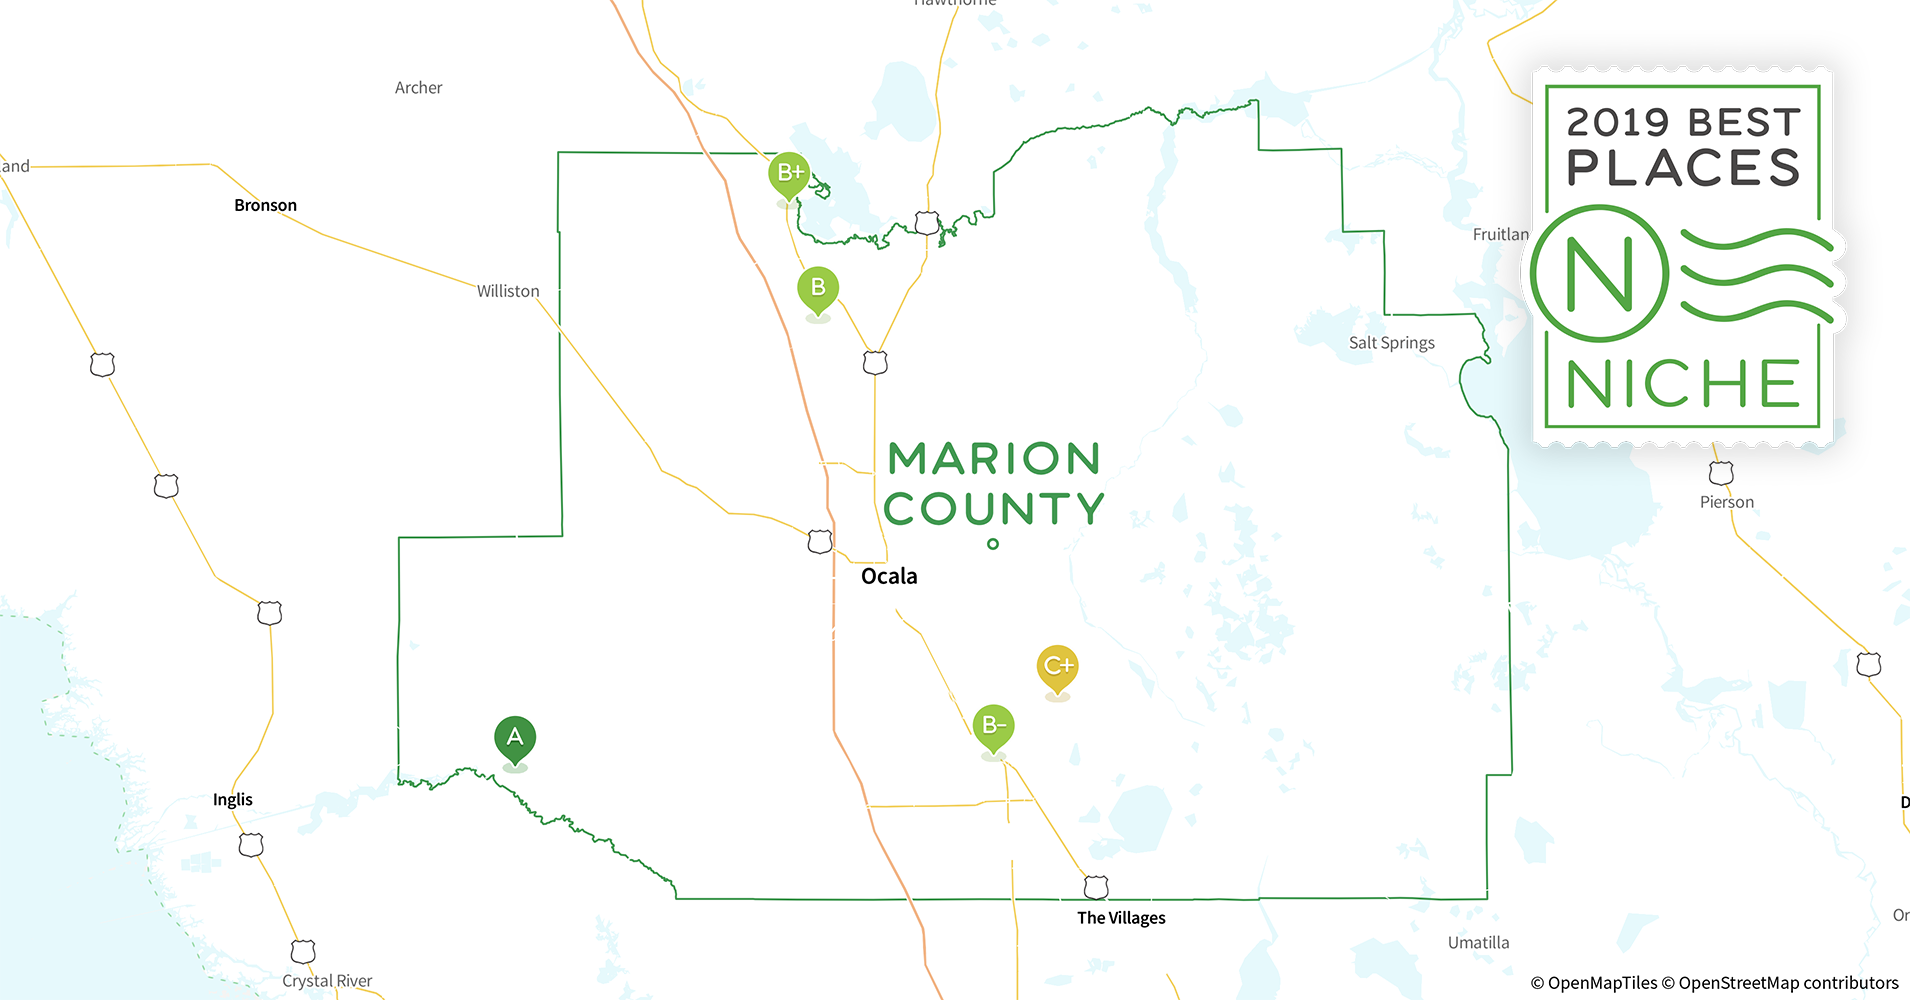 2019 Best Places to Live in Marion County, FL - Niche